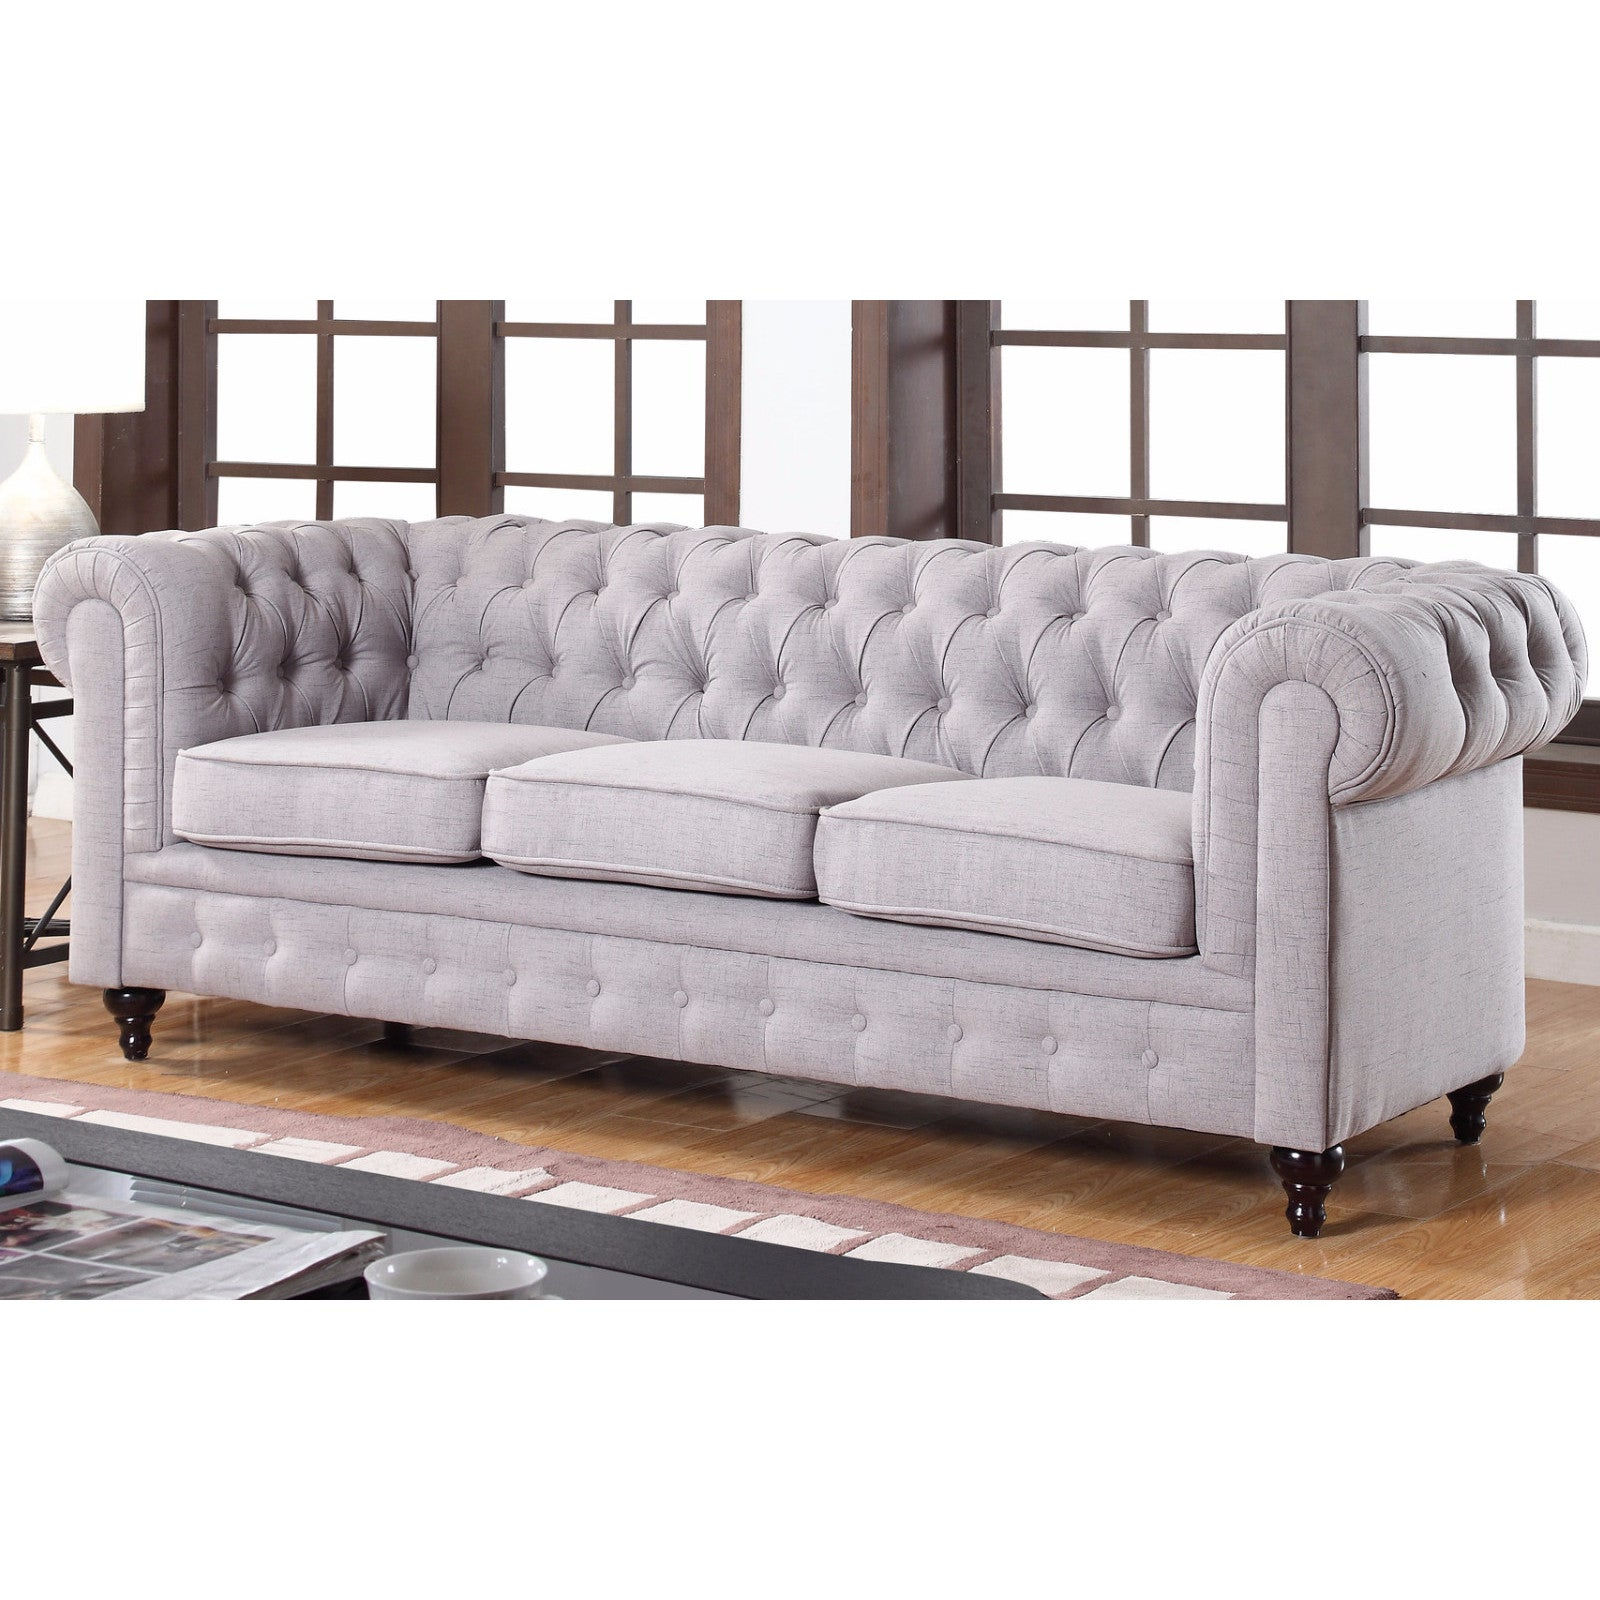 Madison Classic Stone Scroll Arm Tufted Linen Fabric Ches...